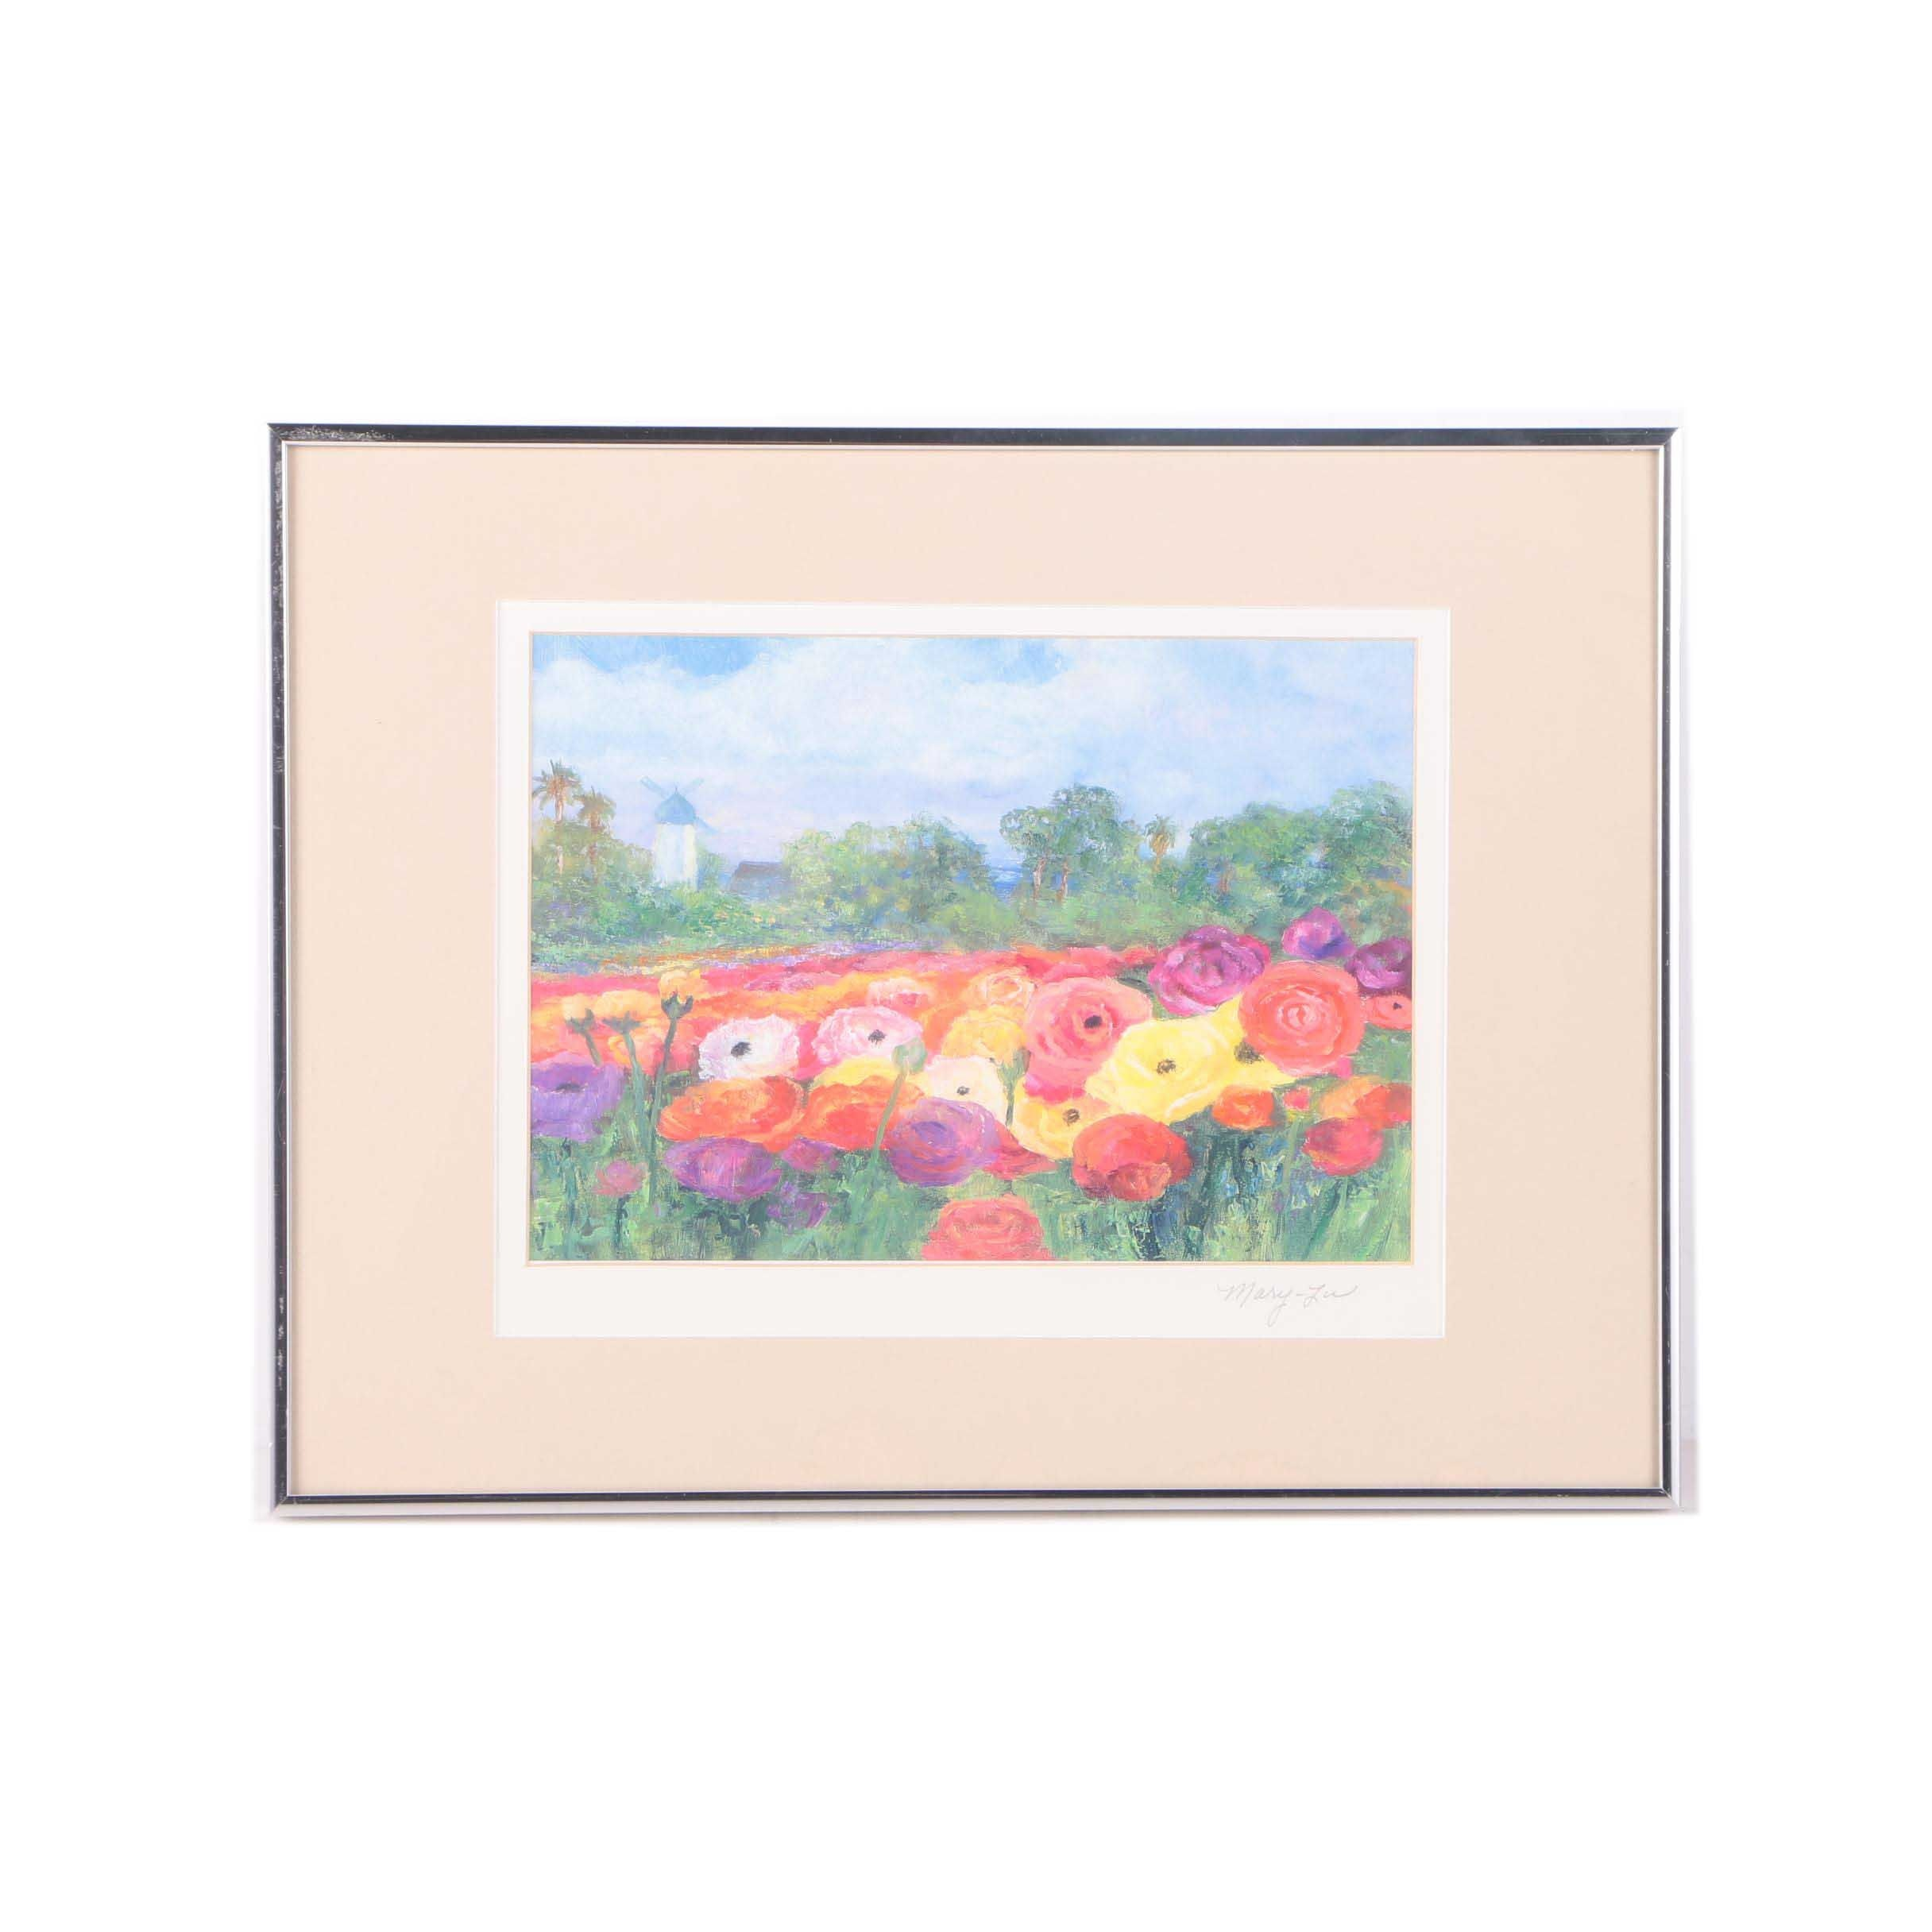 Mary-Lu Offset Lithograph on Paper of a Poppy Field